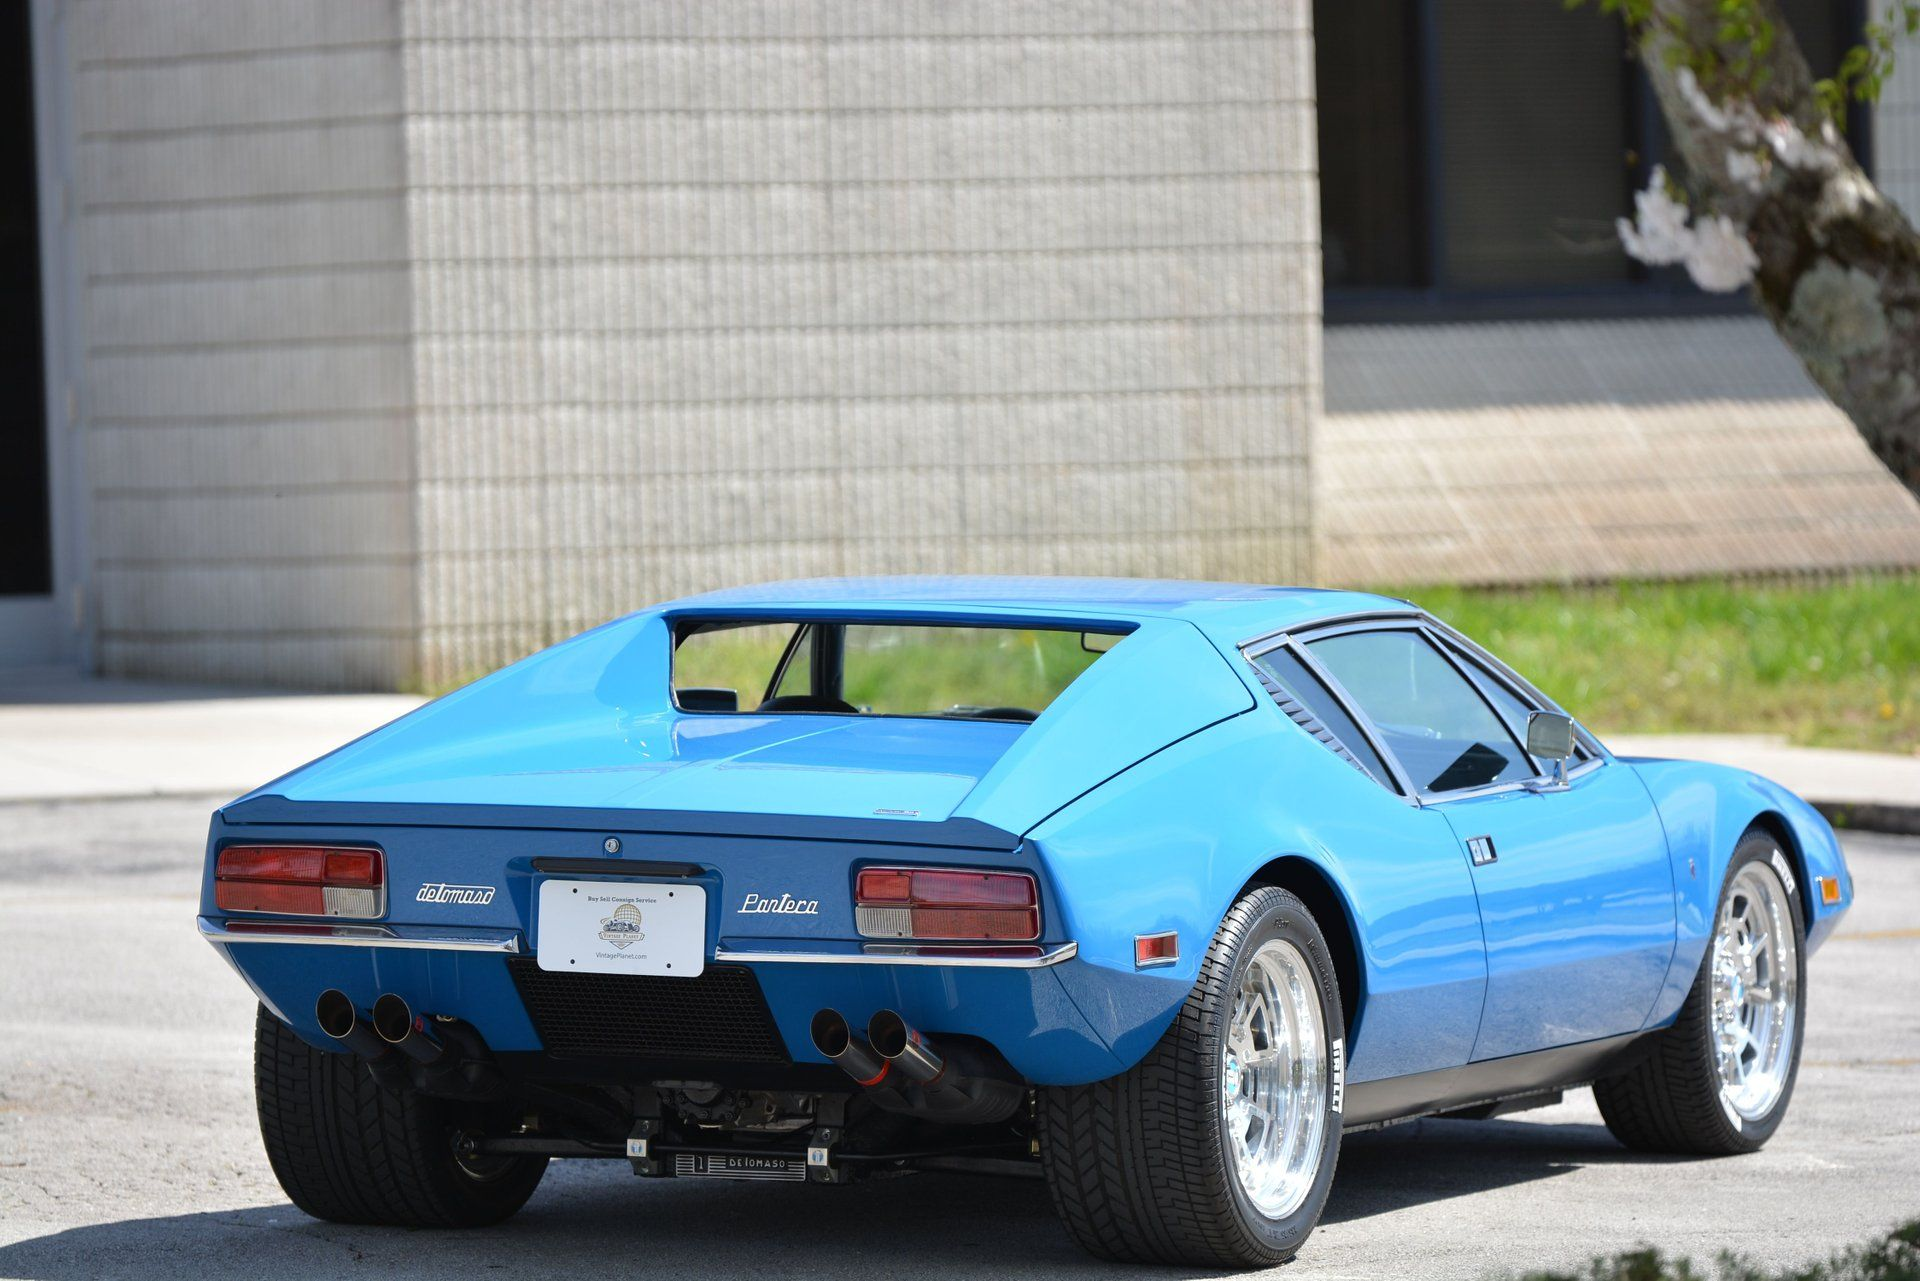 Scoop This Low-Mileage 1972 De Tomaso Pantera